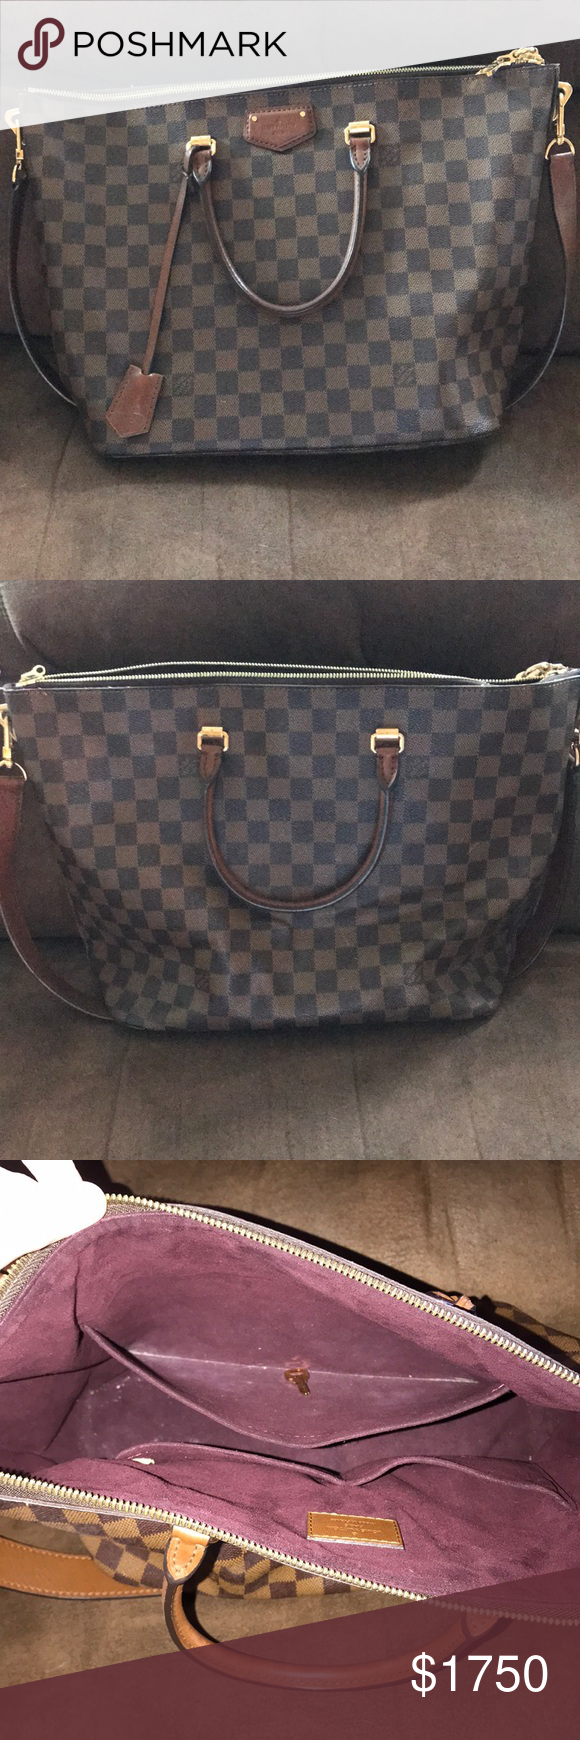 Louis Vuitton Belmont Damier Ebene Louis Vuitton Belmont